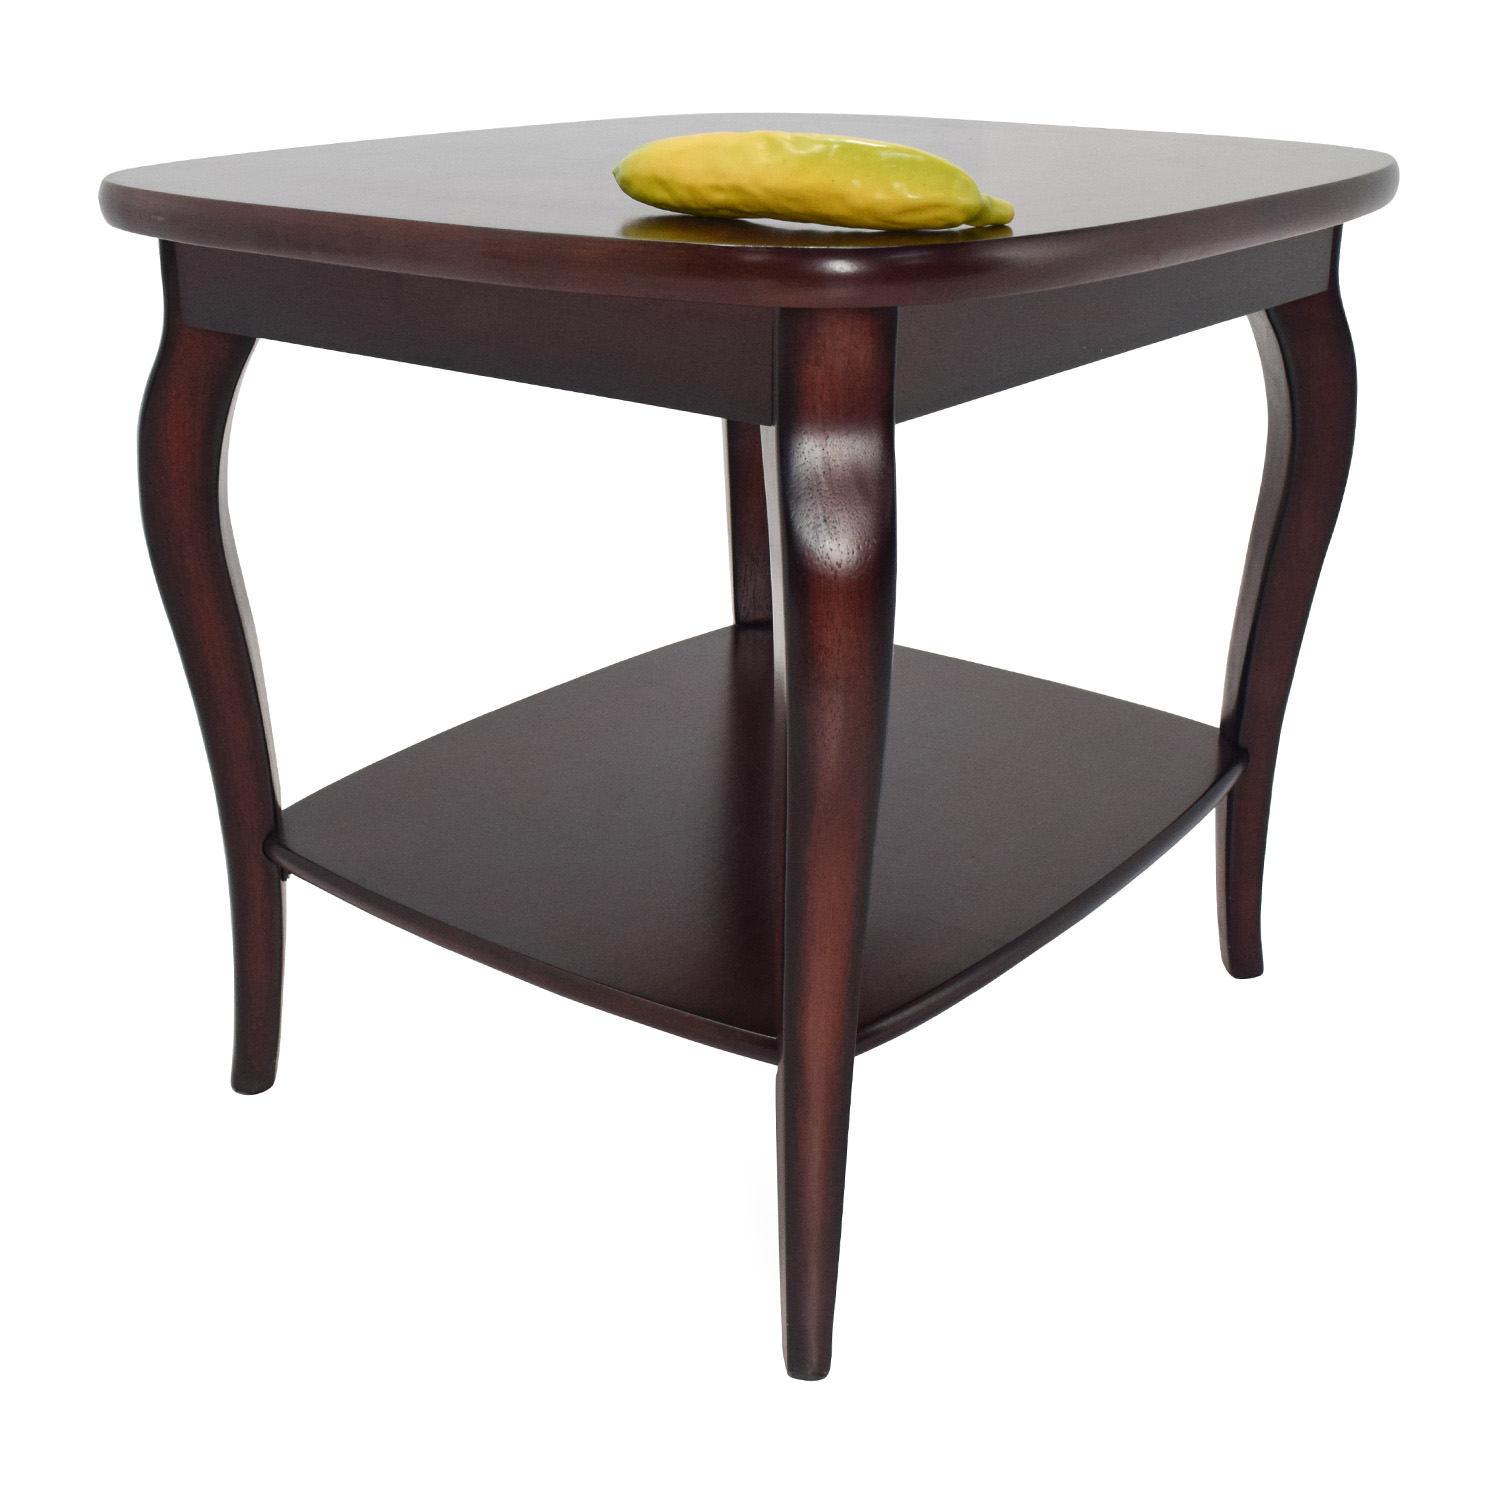 Pleasant 50 Off Raymour Flanigan Raymour Flanigan Side Table Tables Download Free Architecture Designs Grimeyleaguecom